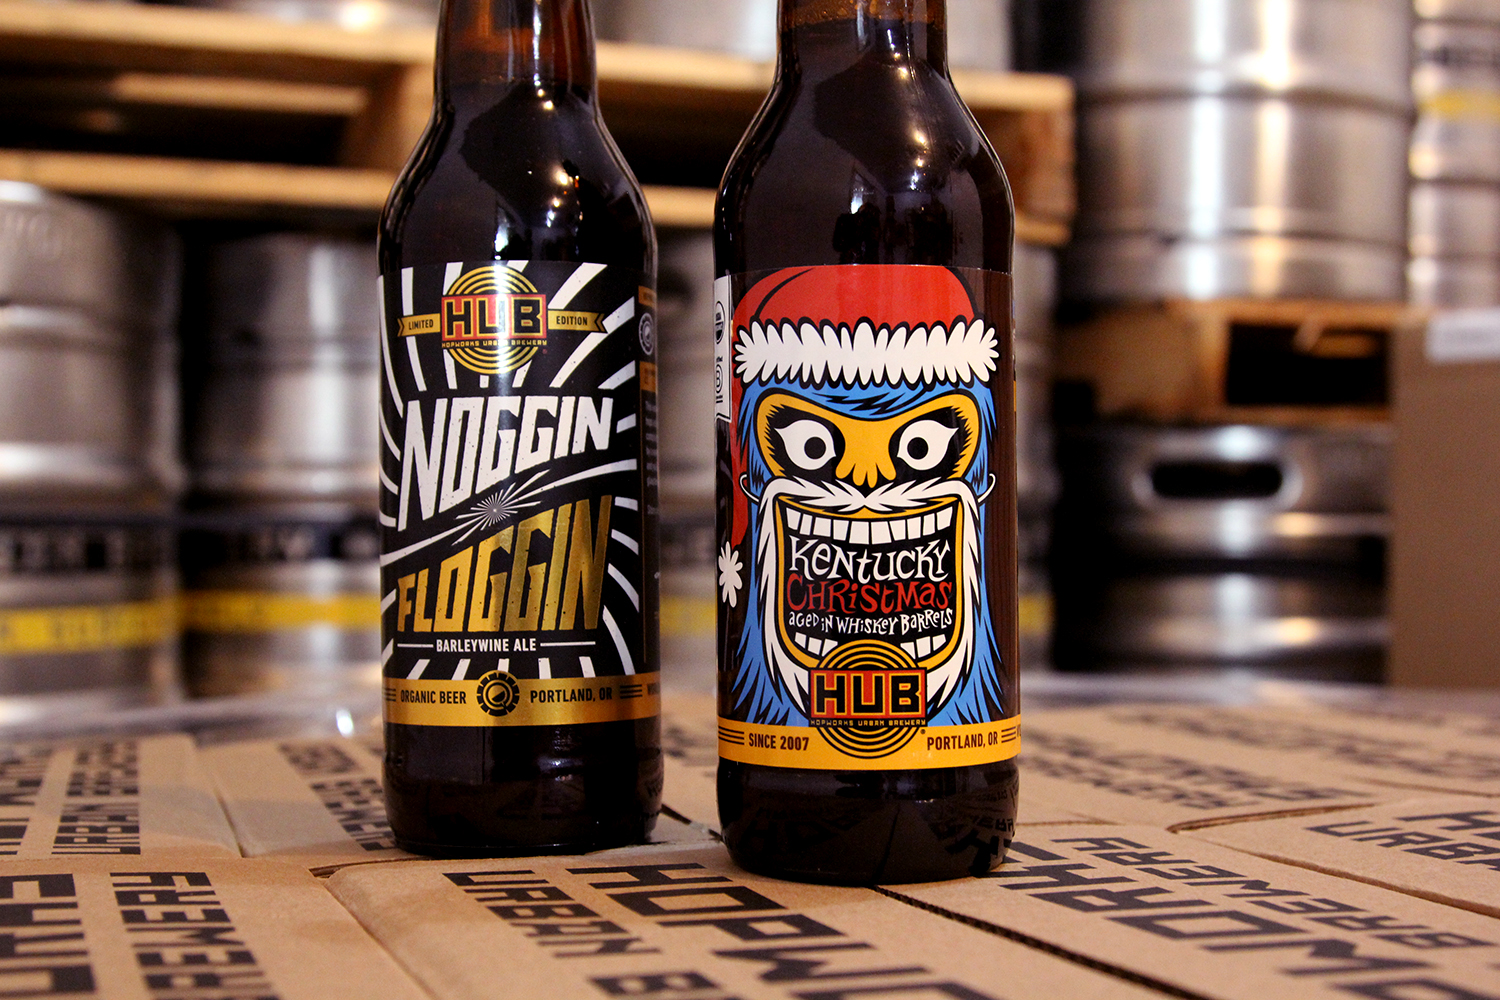 Bottles of Kentucky Christmas and Noggin Floggin Barleywine. (image courtesy of Hopworks Urban Brewery)